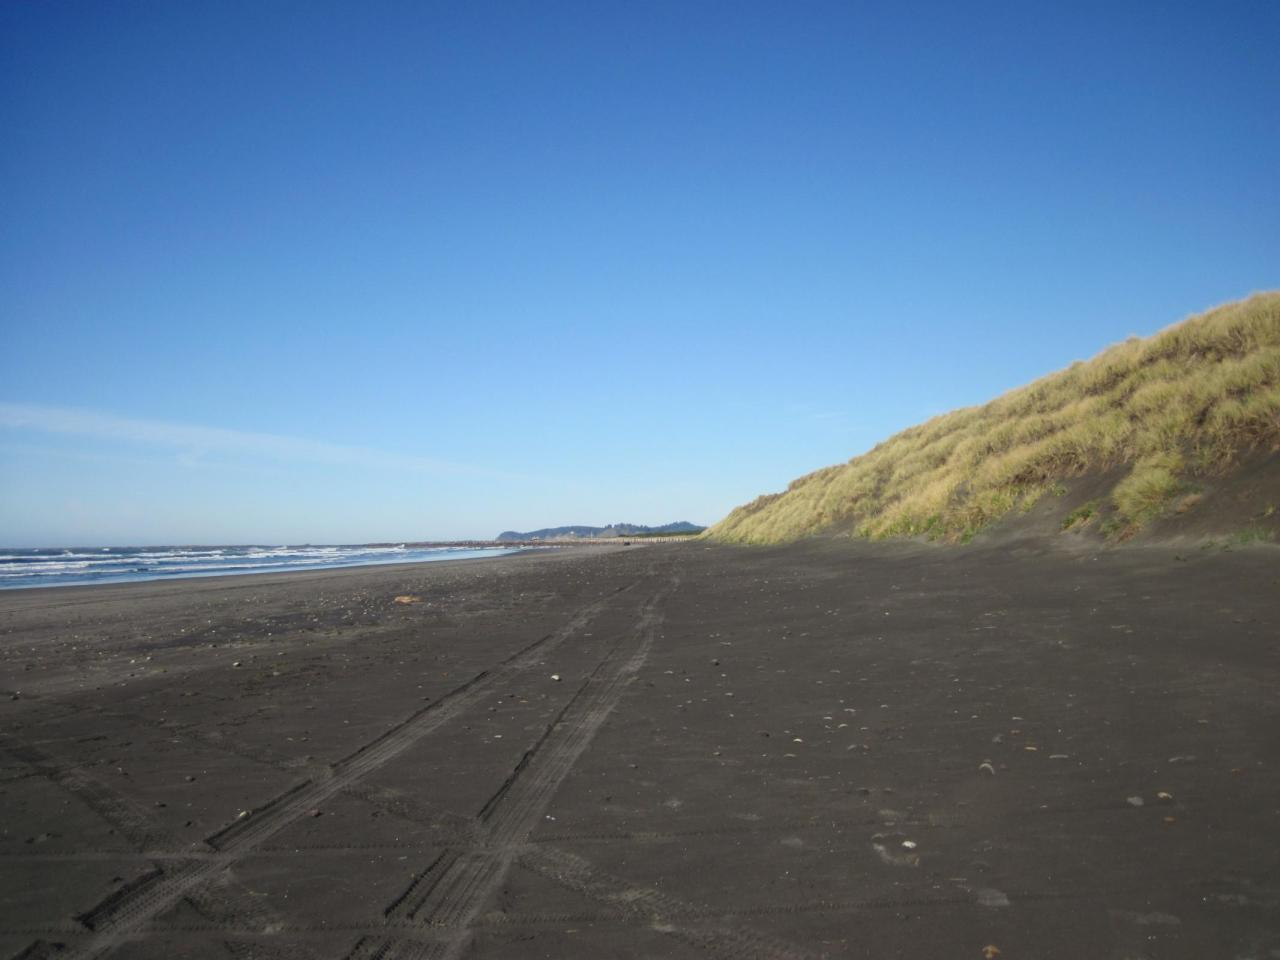 Looking North toward jetty from approx 3/4 mile south of South Columbia River Jetty